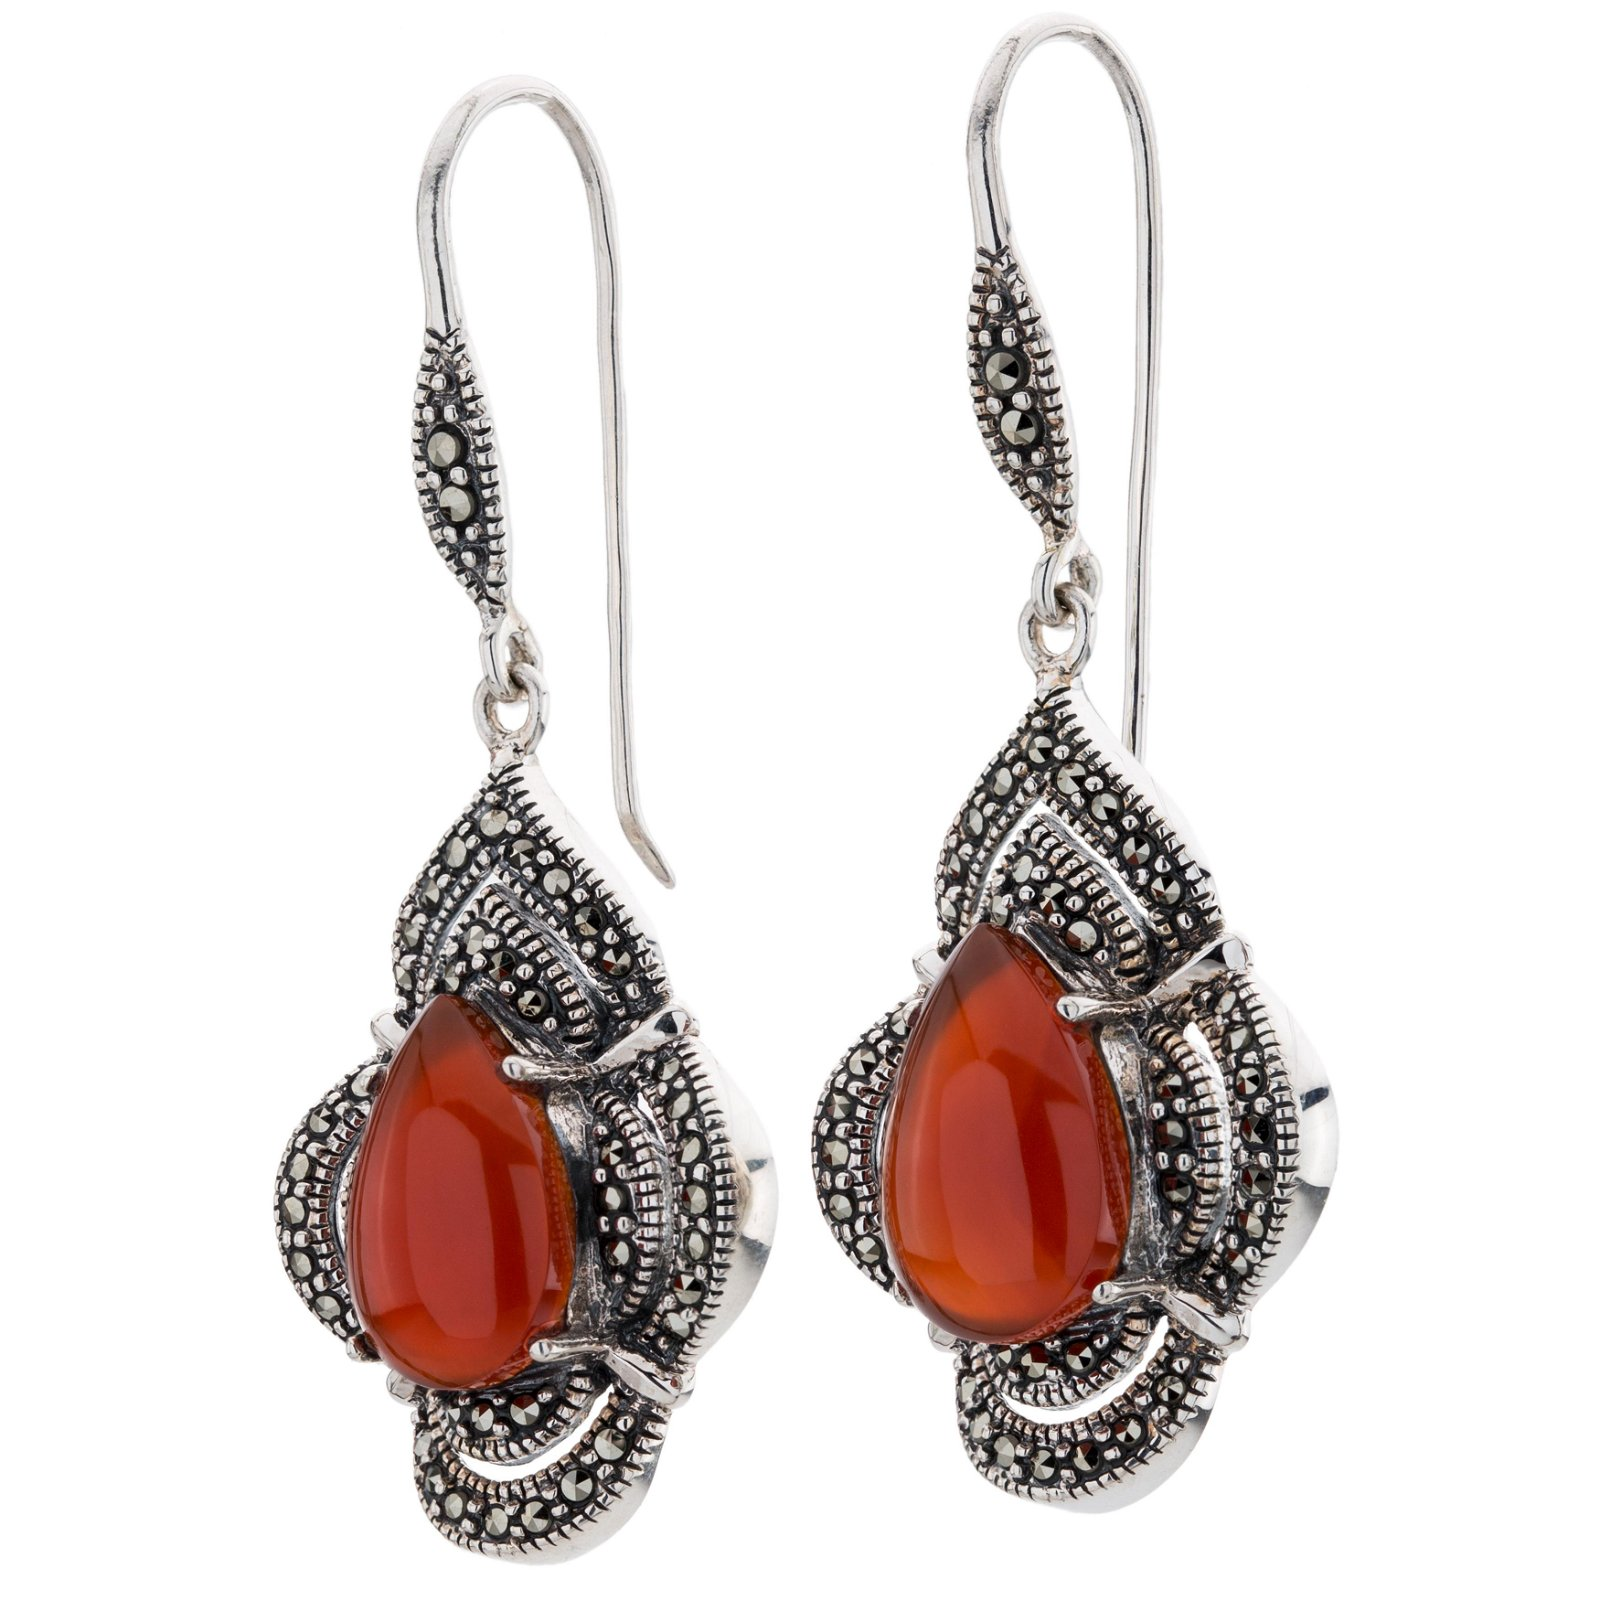 _x000D_ Silver Red Agate & Marcasite Pear Drop